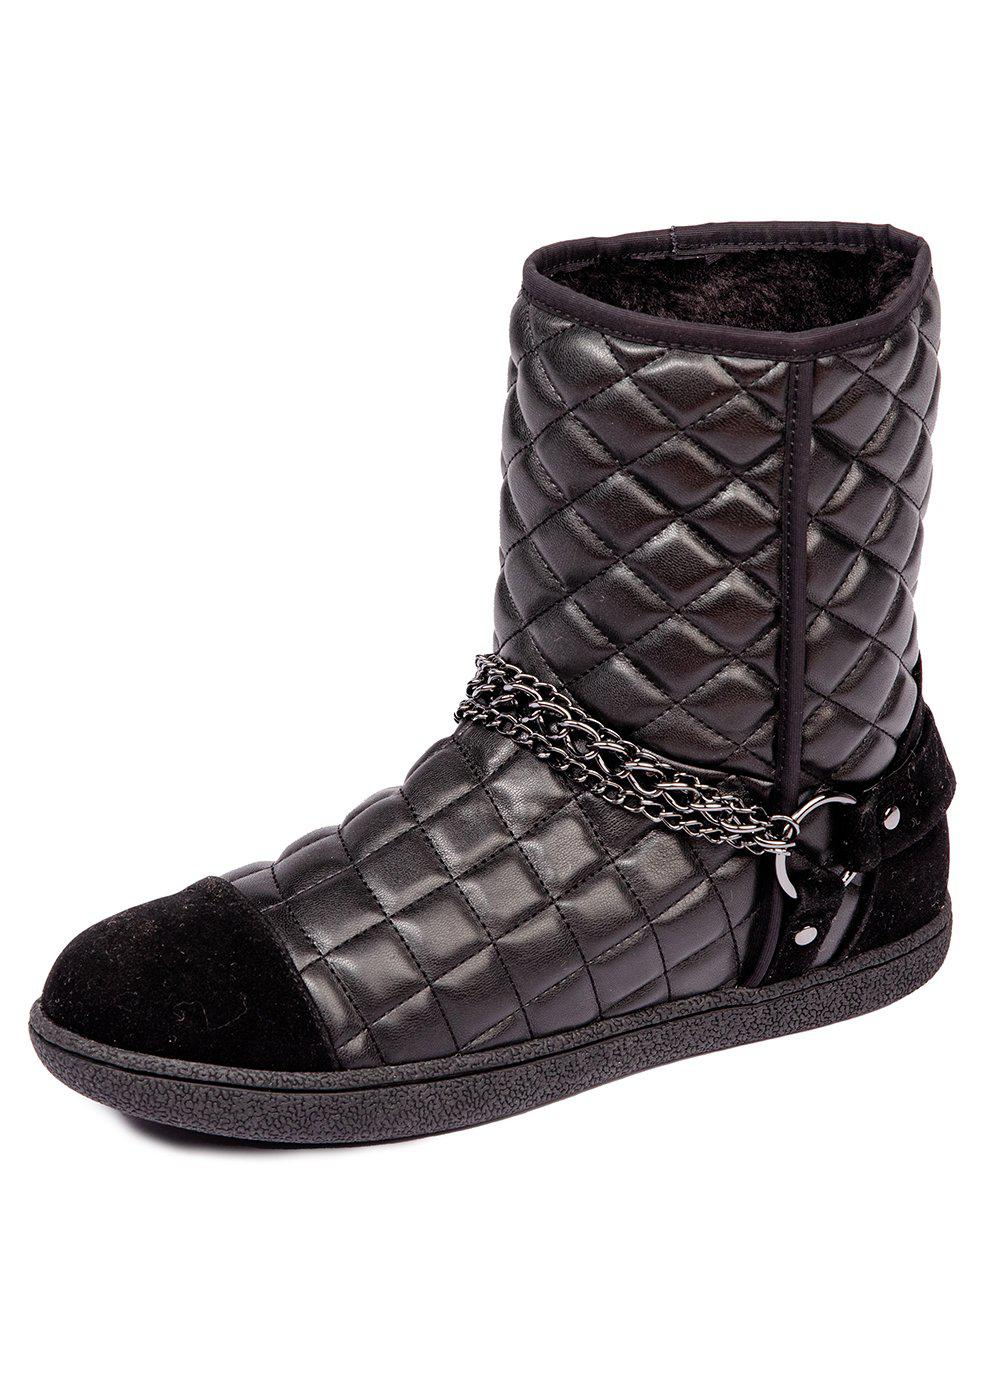 Girls Black Winter Biker Boots With Faux Fur Lining-TeenzShop